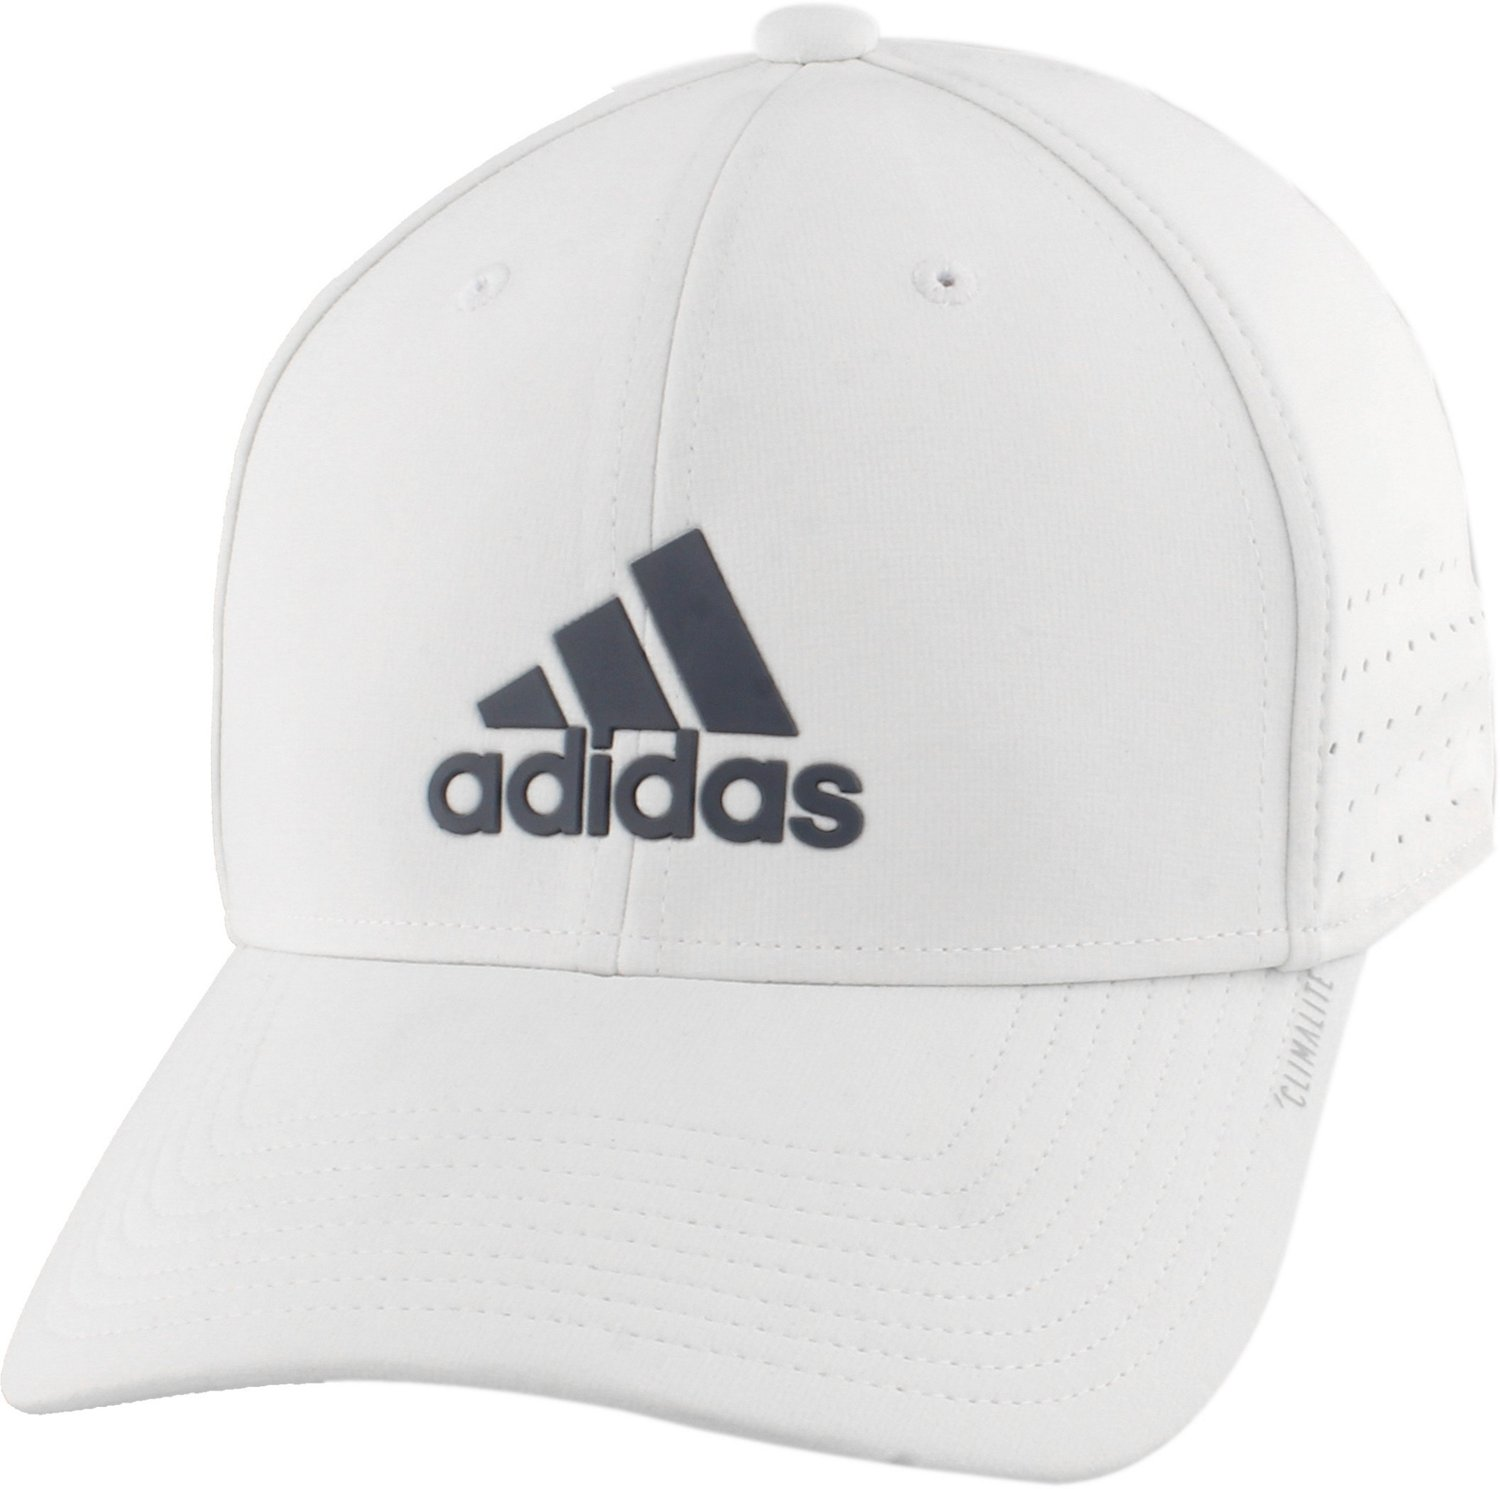 adidas Men s Game Day Stretch Fit Cap  684c636f3eb6